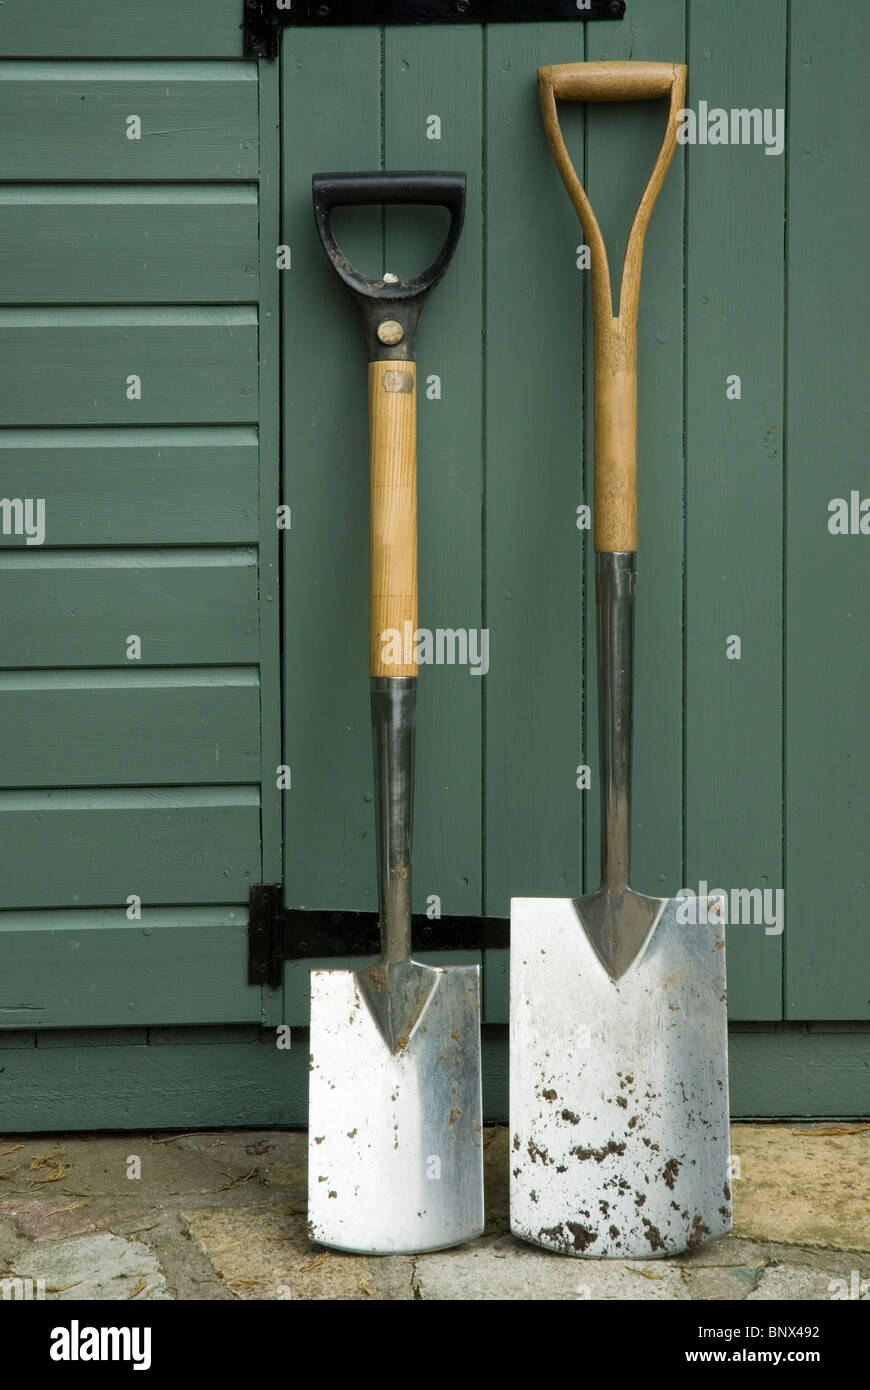 Border spade and digging spade against a shed - Stock Image